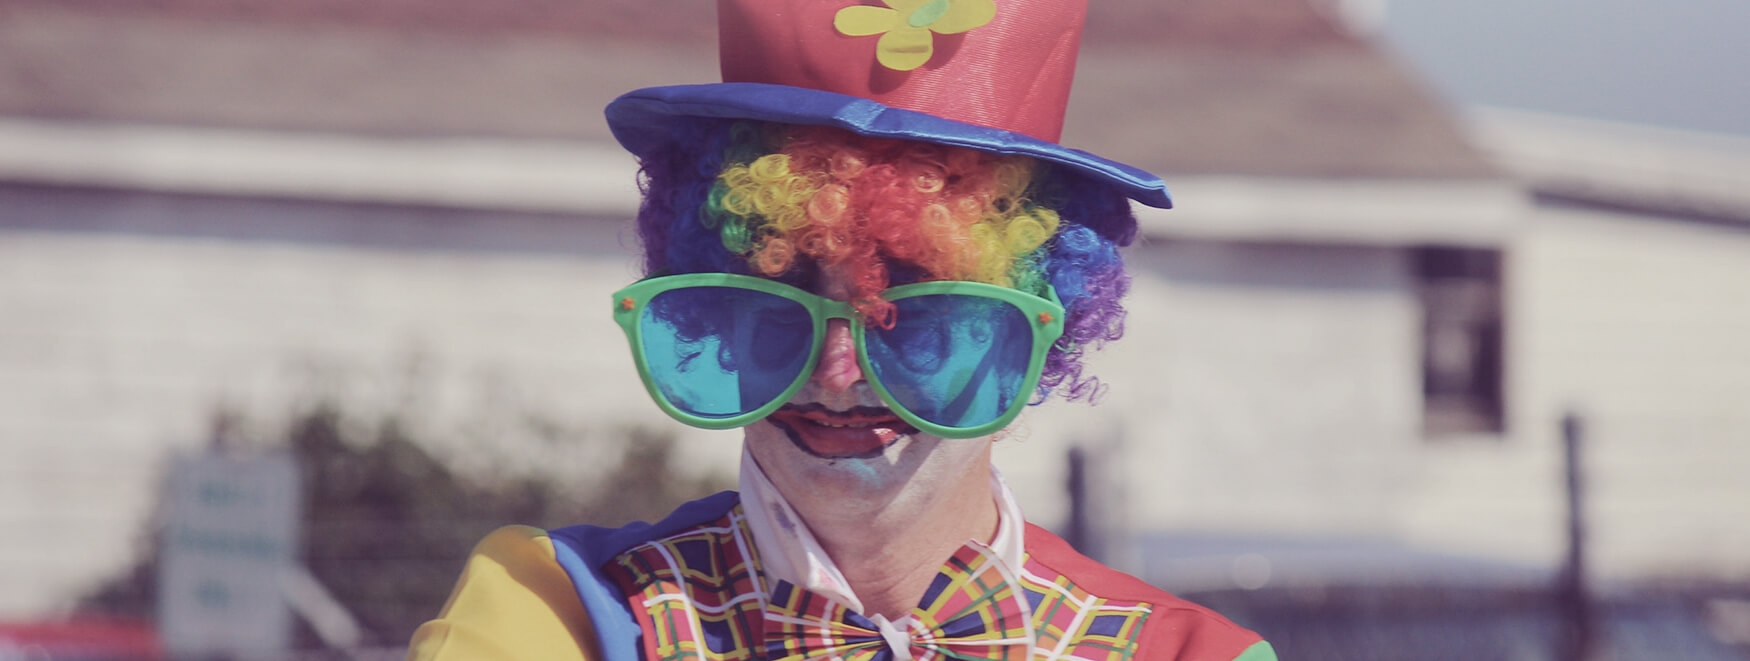 entertainmens-clown-promotie